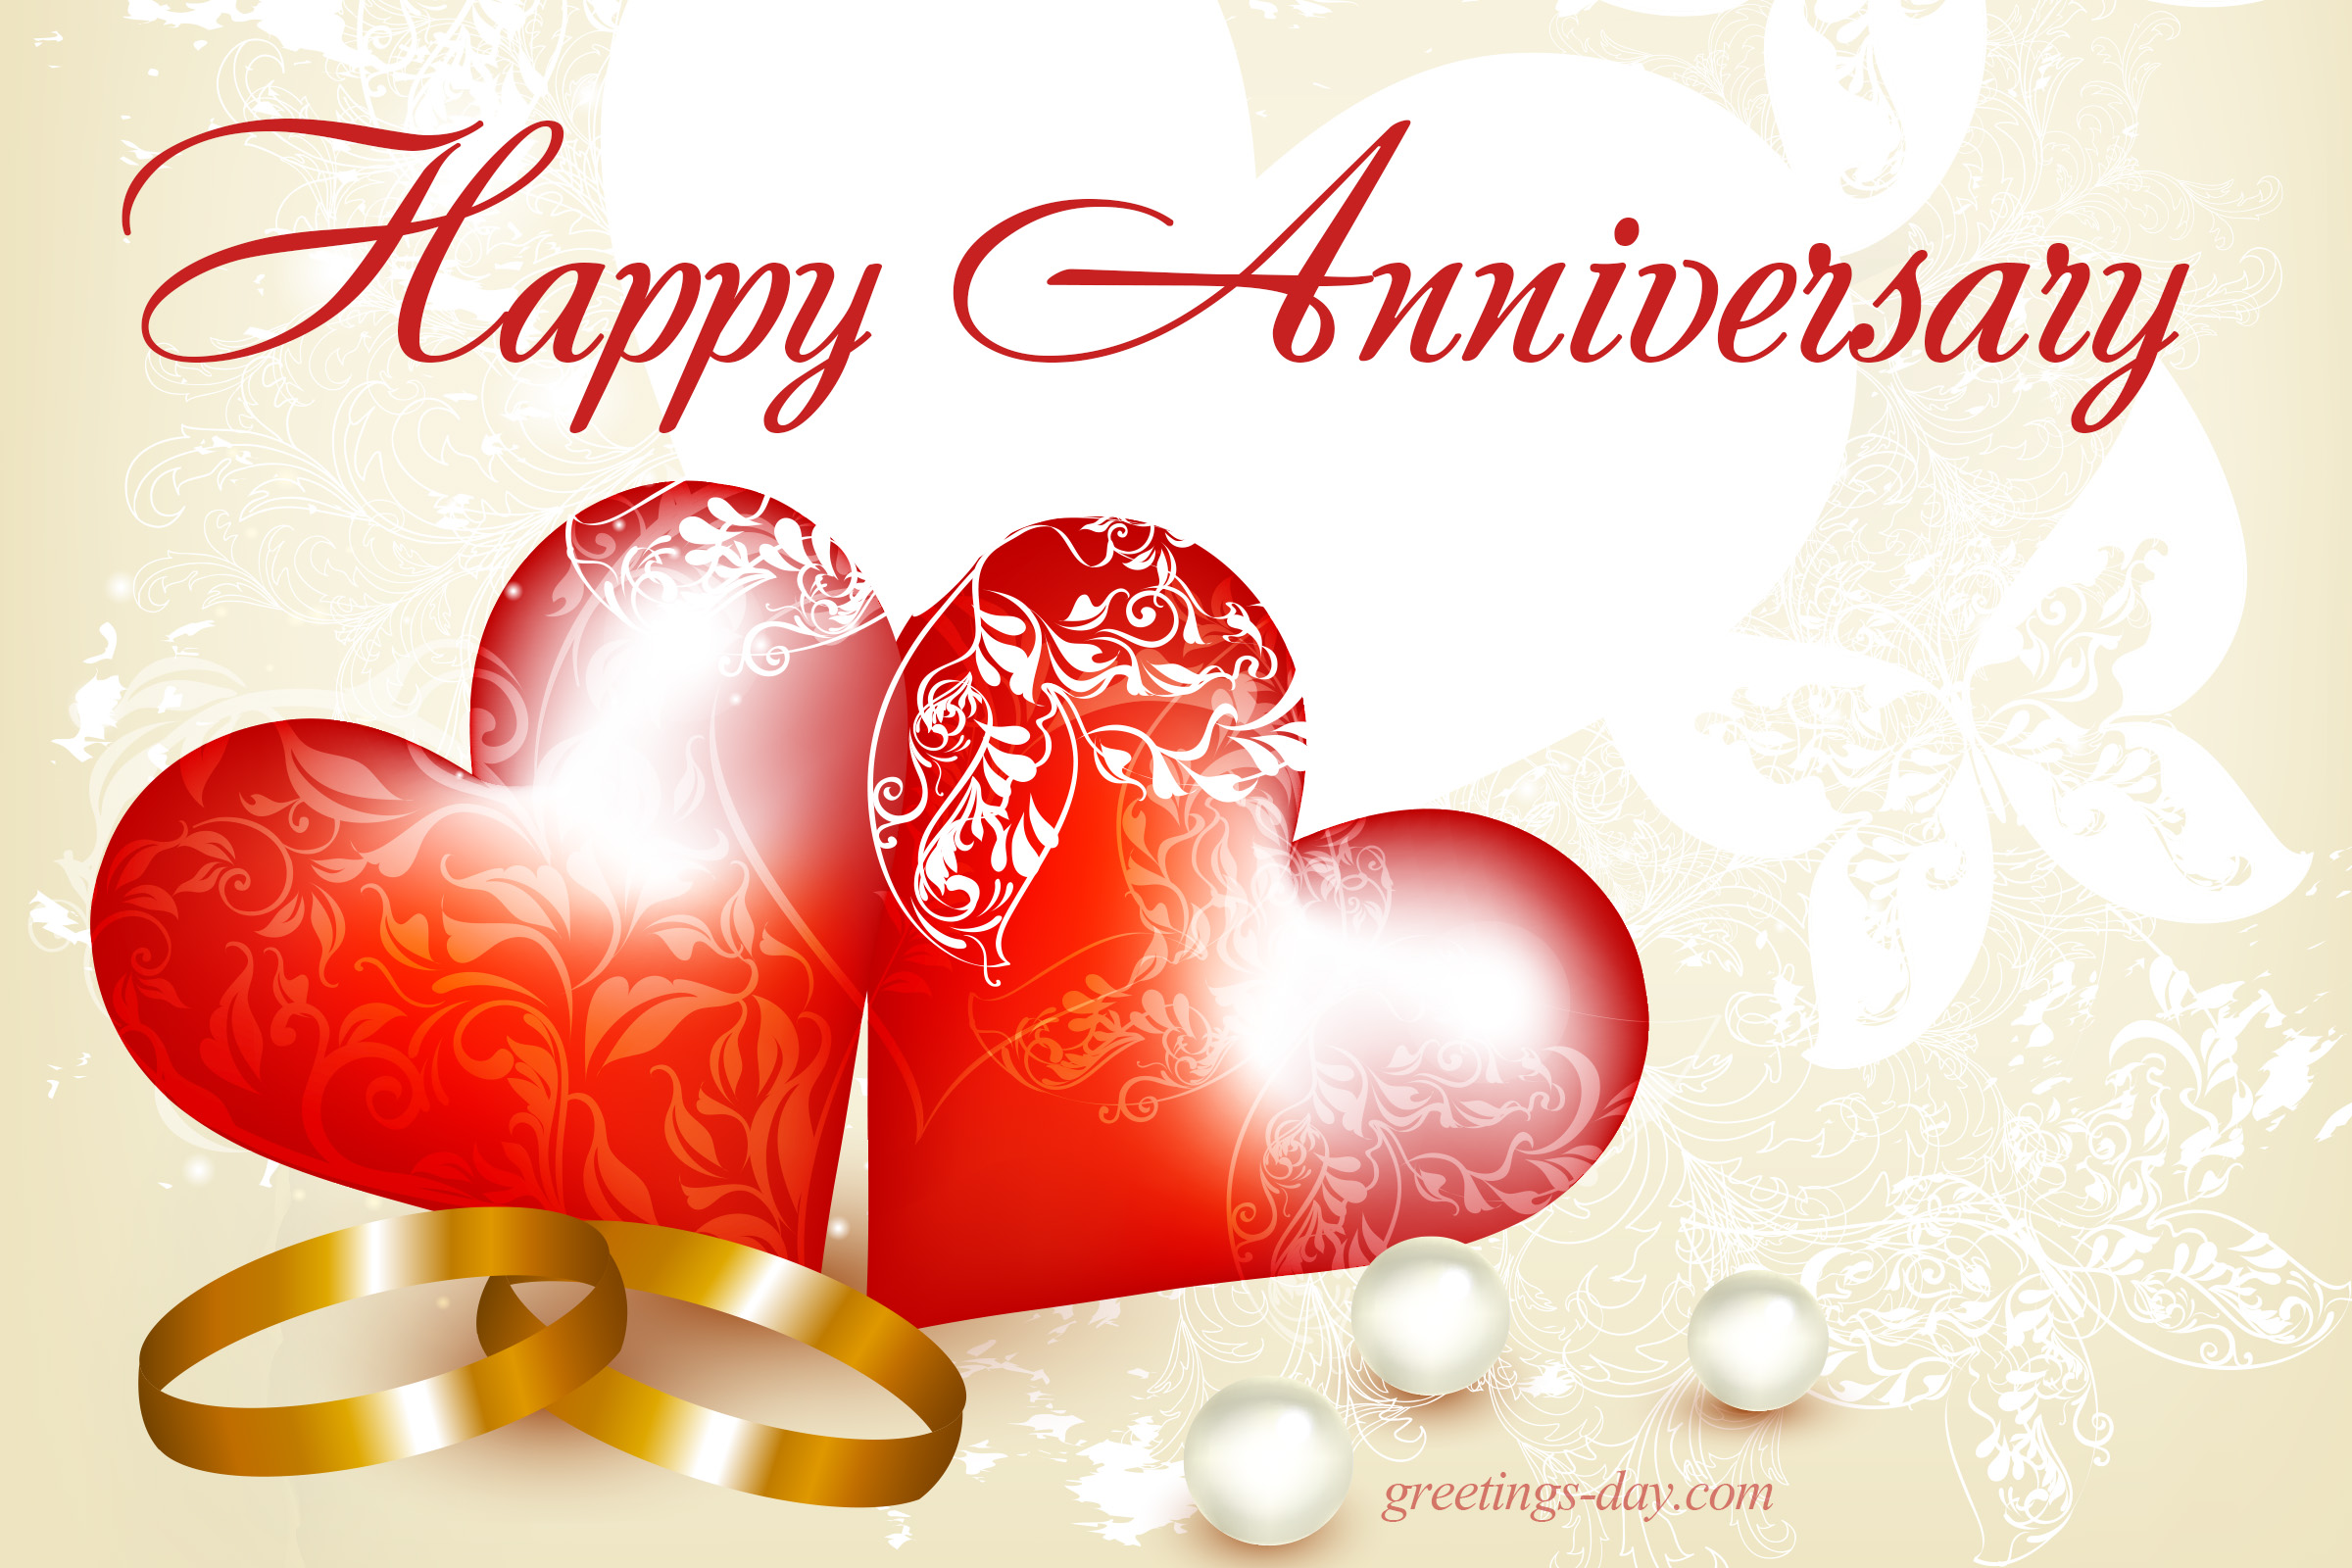 Wedding anniversary free ecards pics gifs